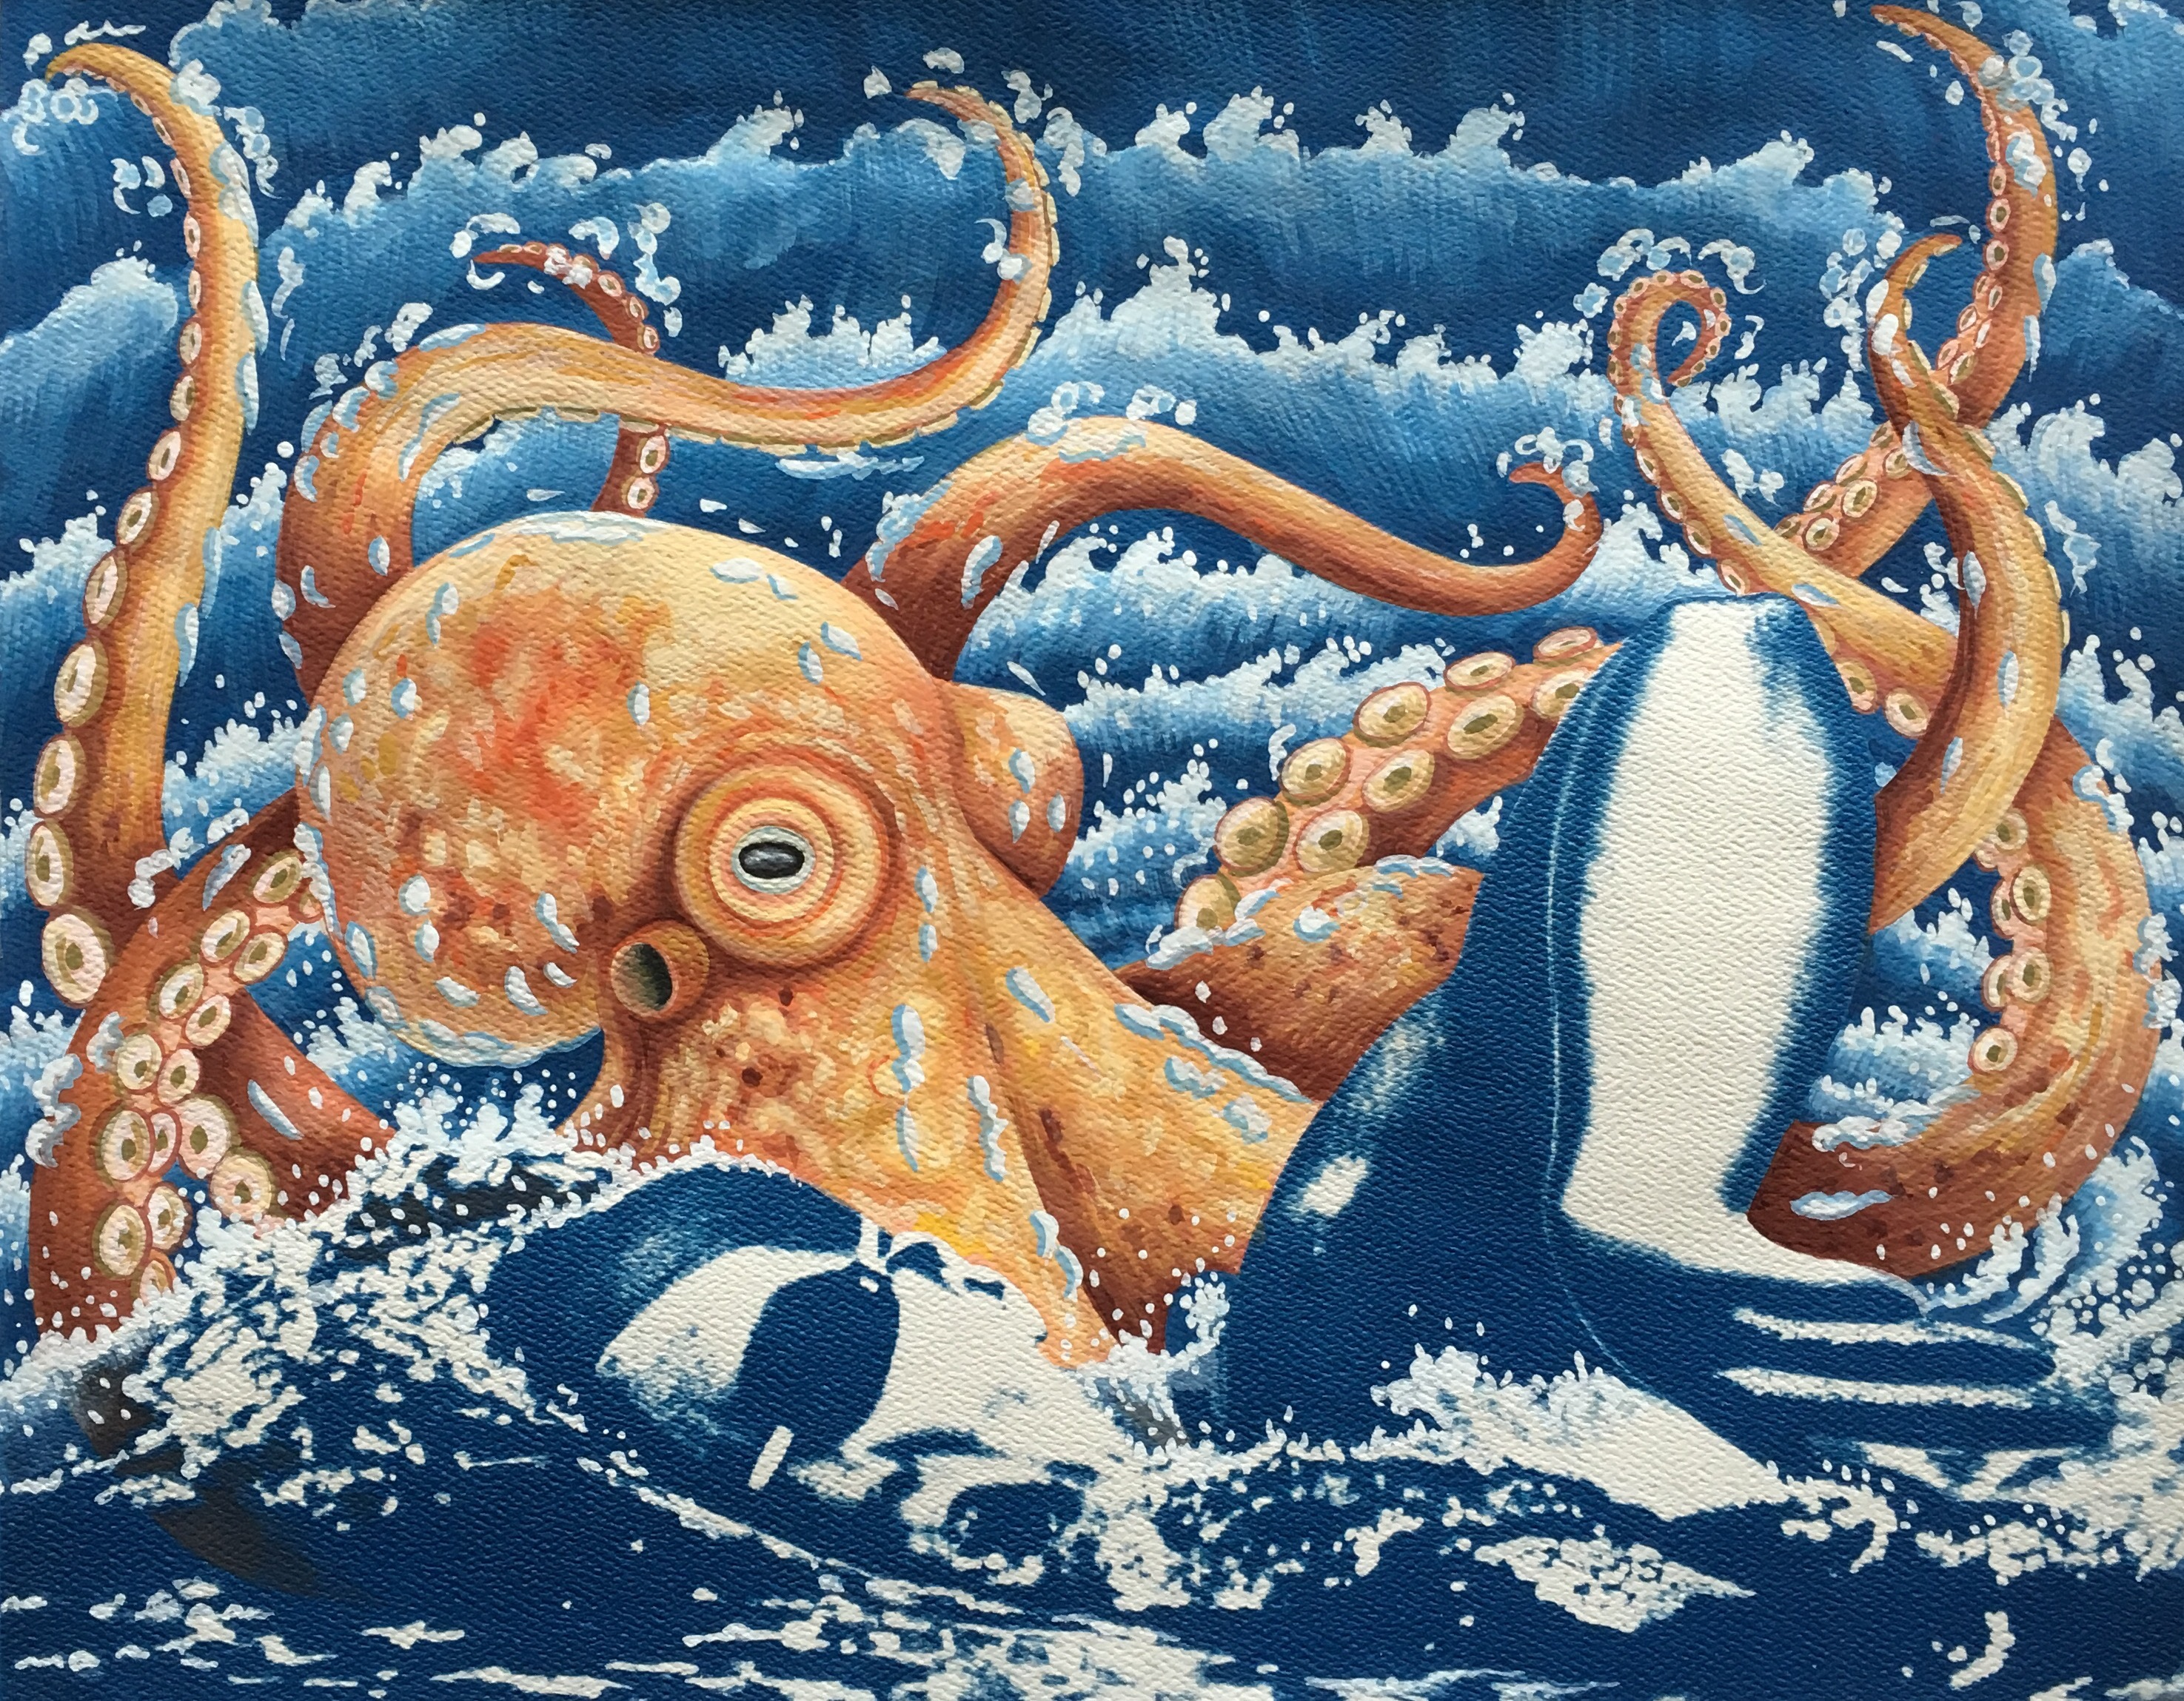 2) Octopus Attack. 2016, 28 x 35 cm, cyanotype print and gouache on paper.